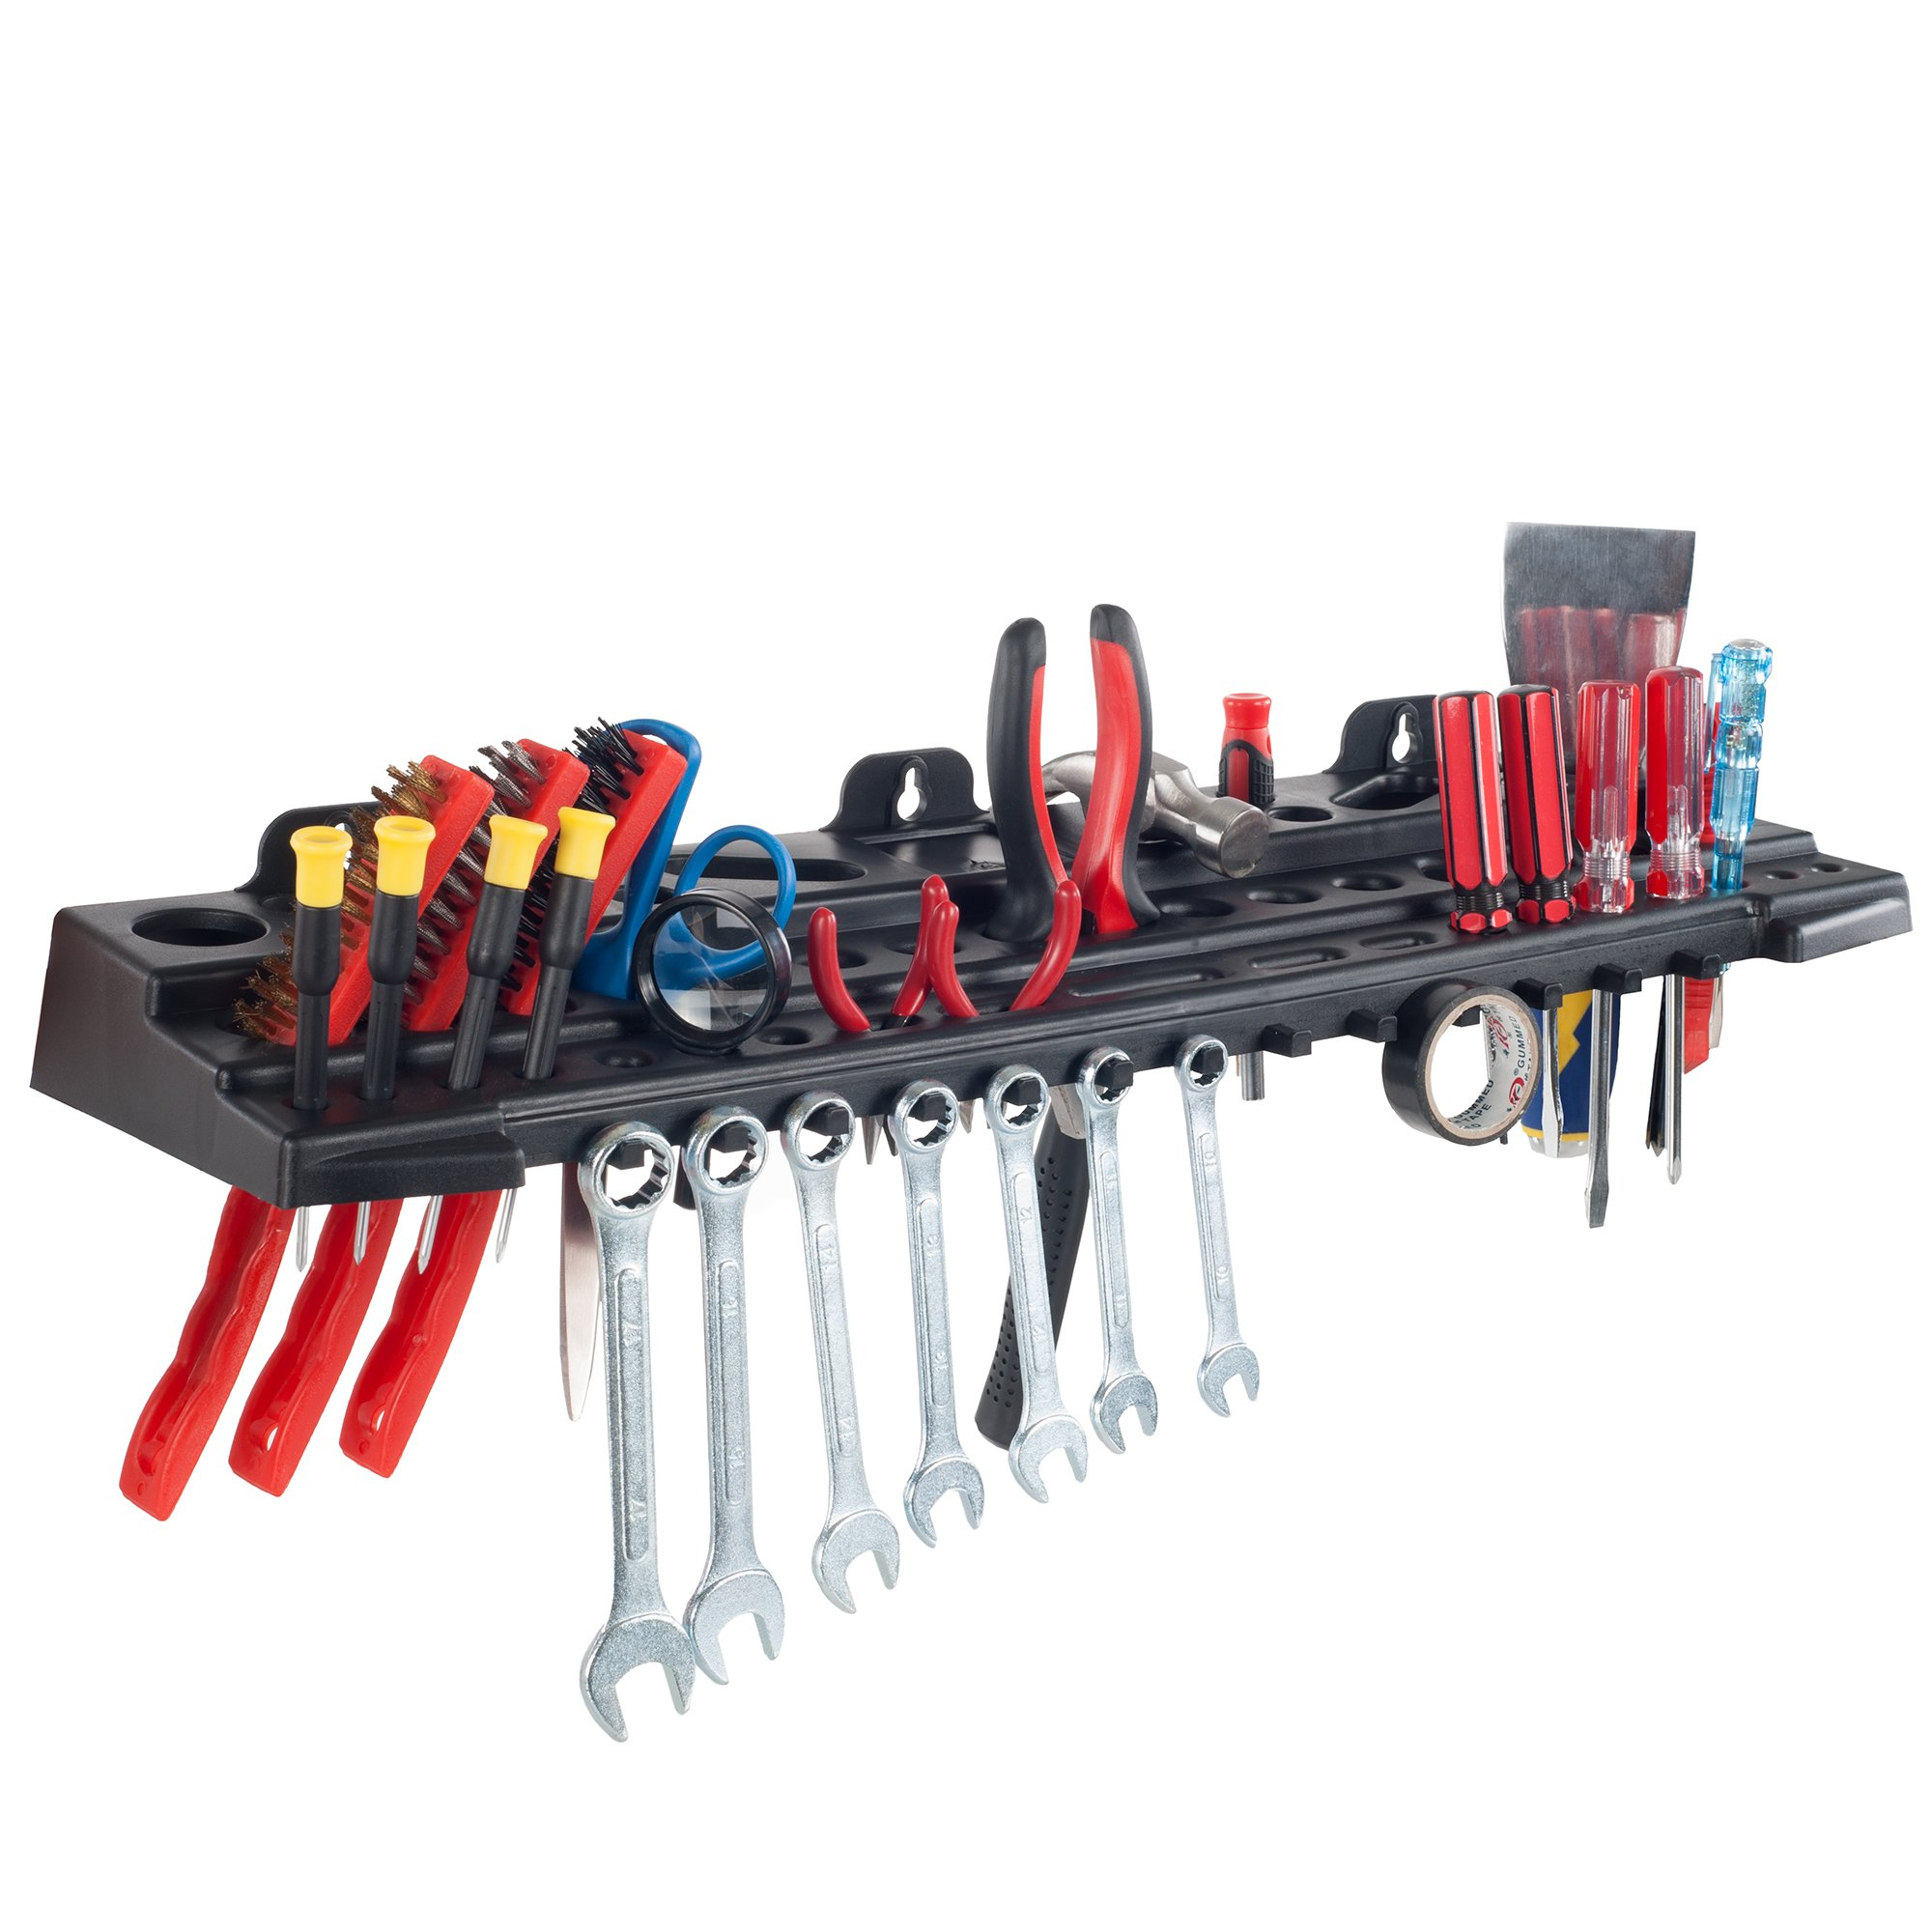 Stalwart Multitool Organizer for Hand Tools, Automotive Tools, and Electric Tools, Wall Mounted Shelf